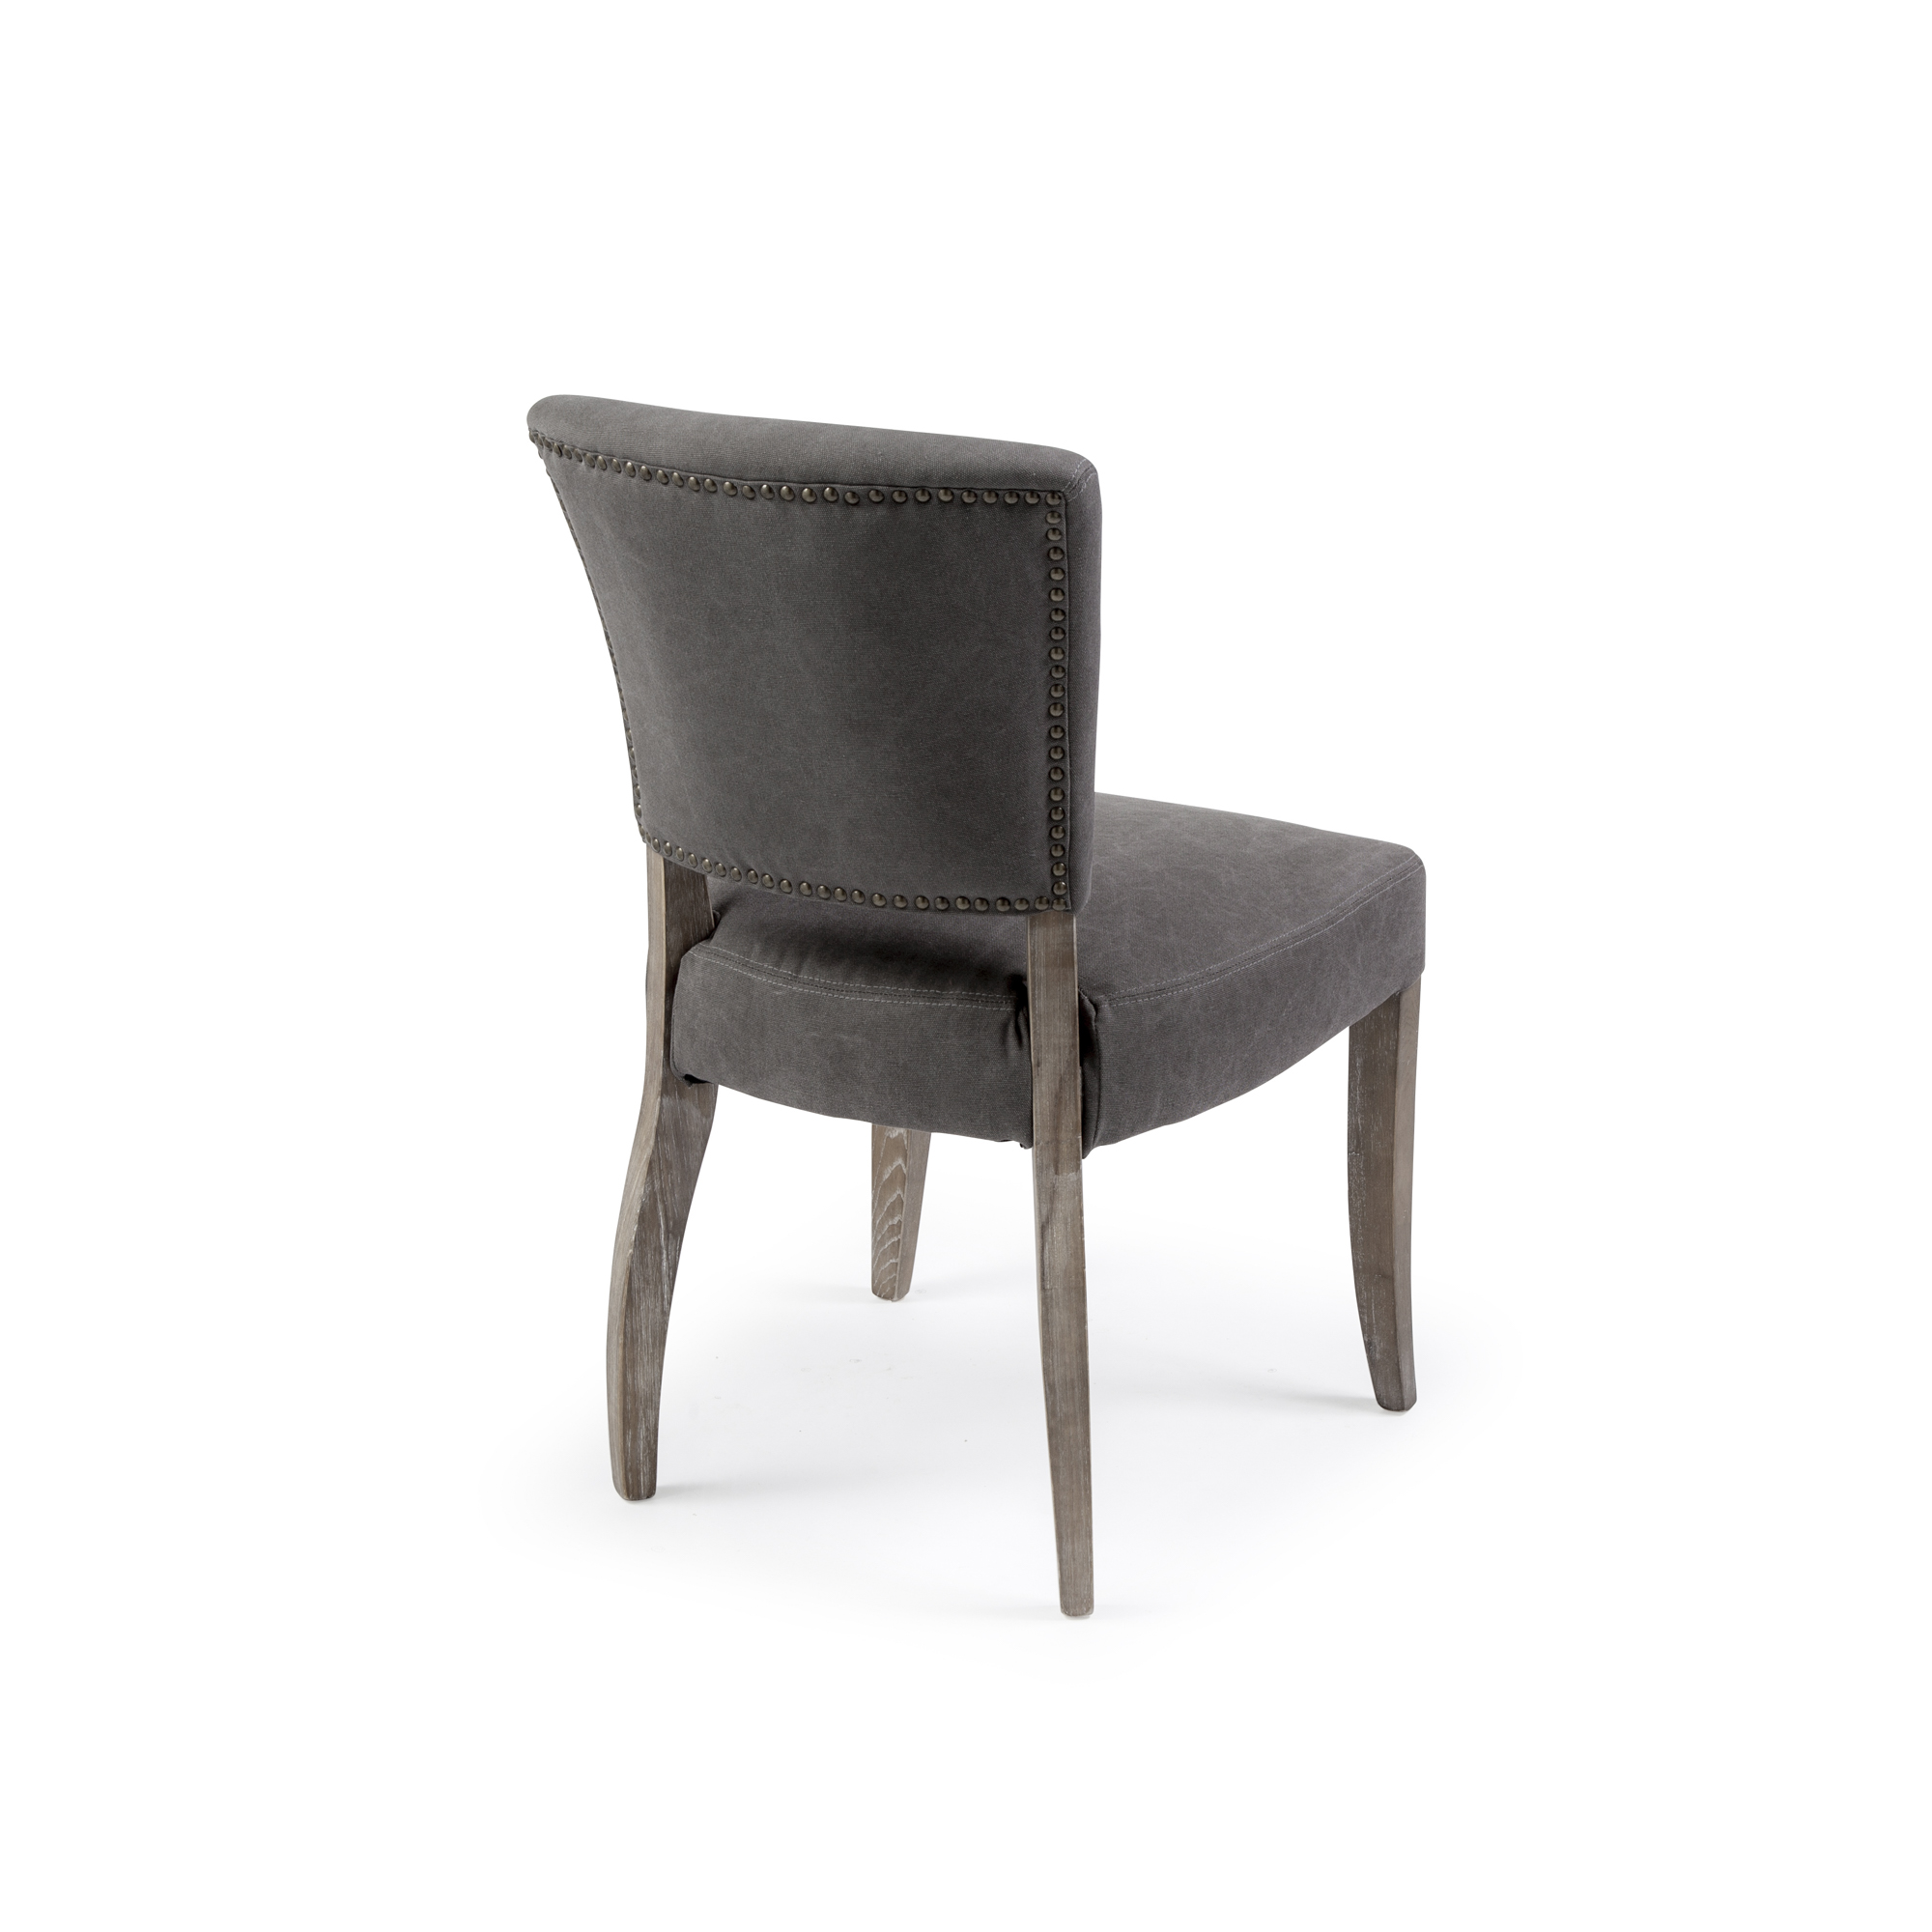 Wilmslow Charcoal Linen Dining Chairs (Set of 2)